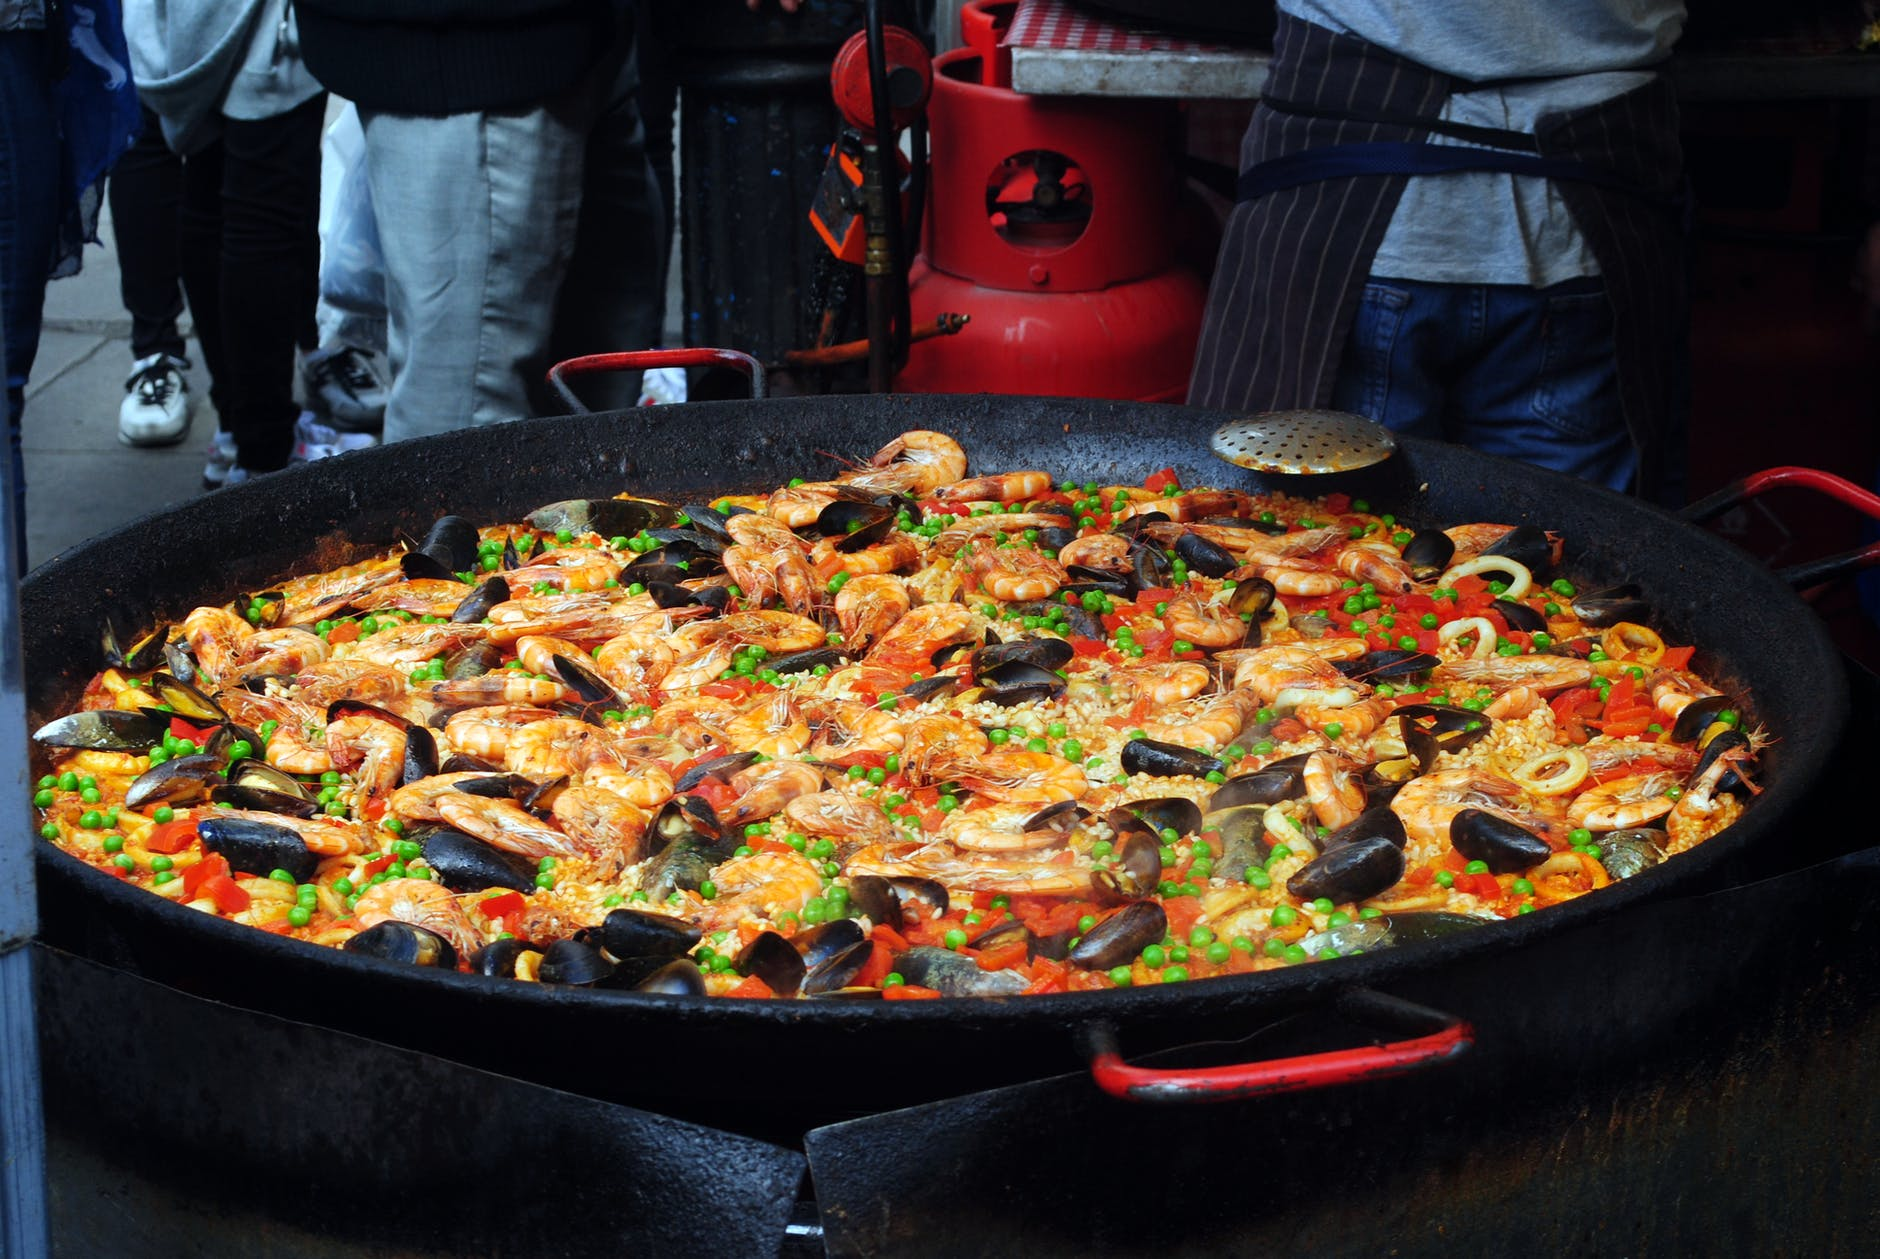 September 20 #WorldPaellaDay! Celebrate This Classic Spanish Dish!